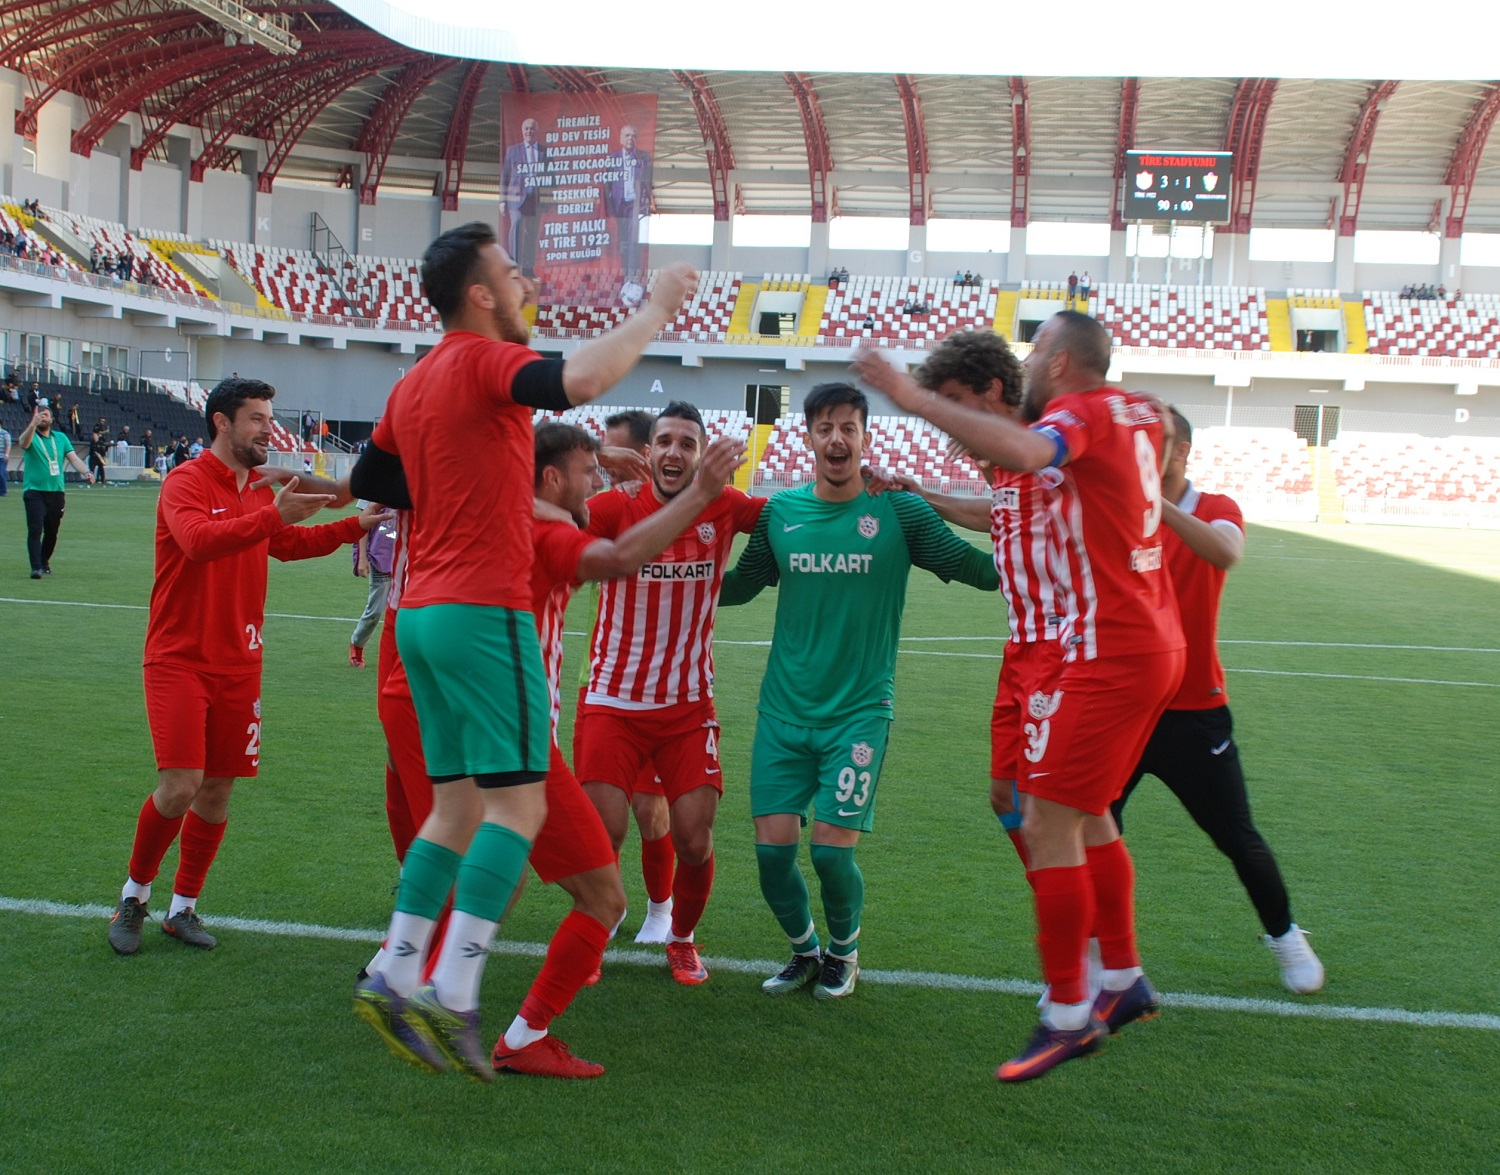 TİRE 1922 ADIM ADIM PLAY-OFF'A YÜRÜYOR